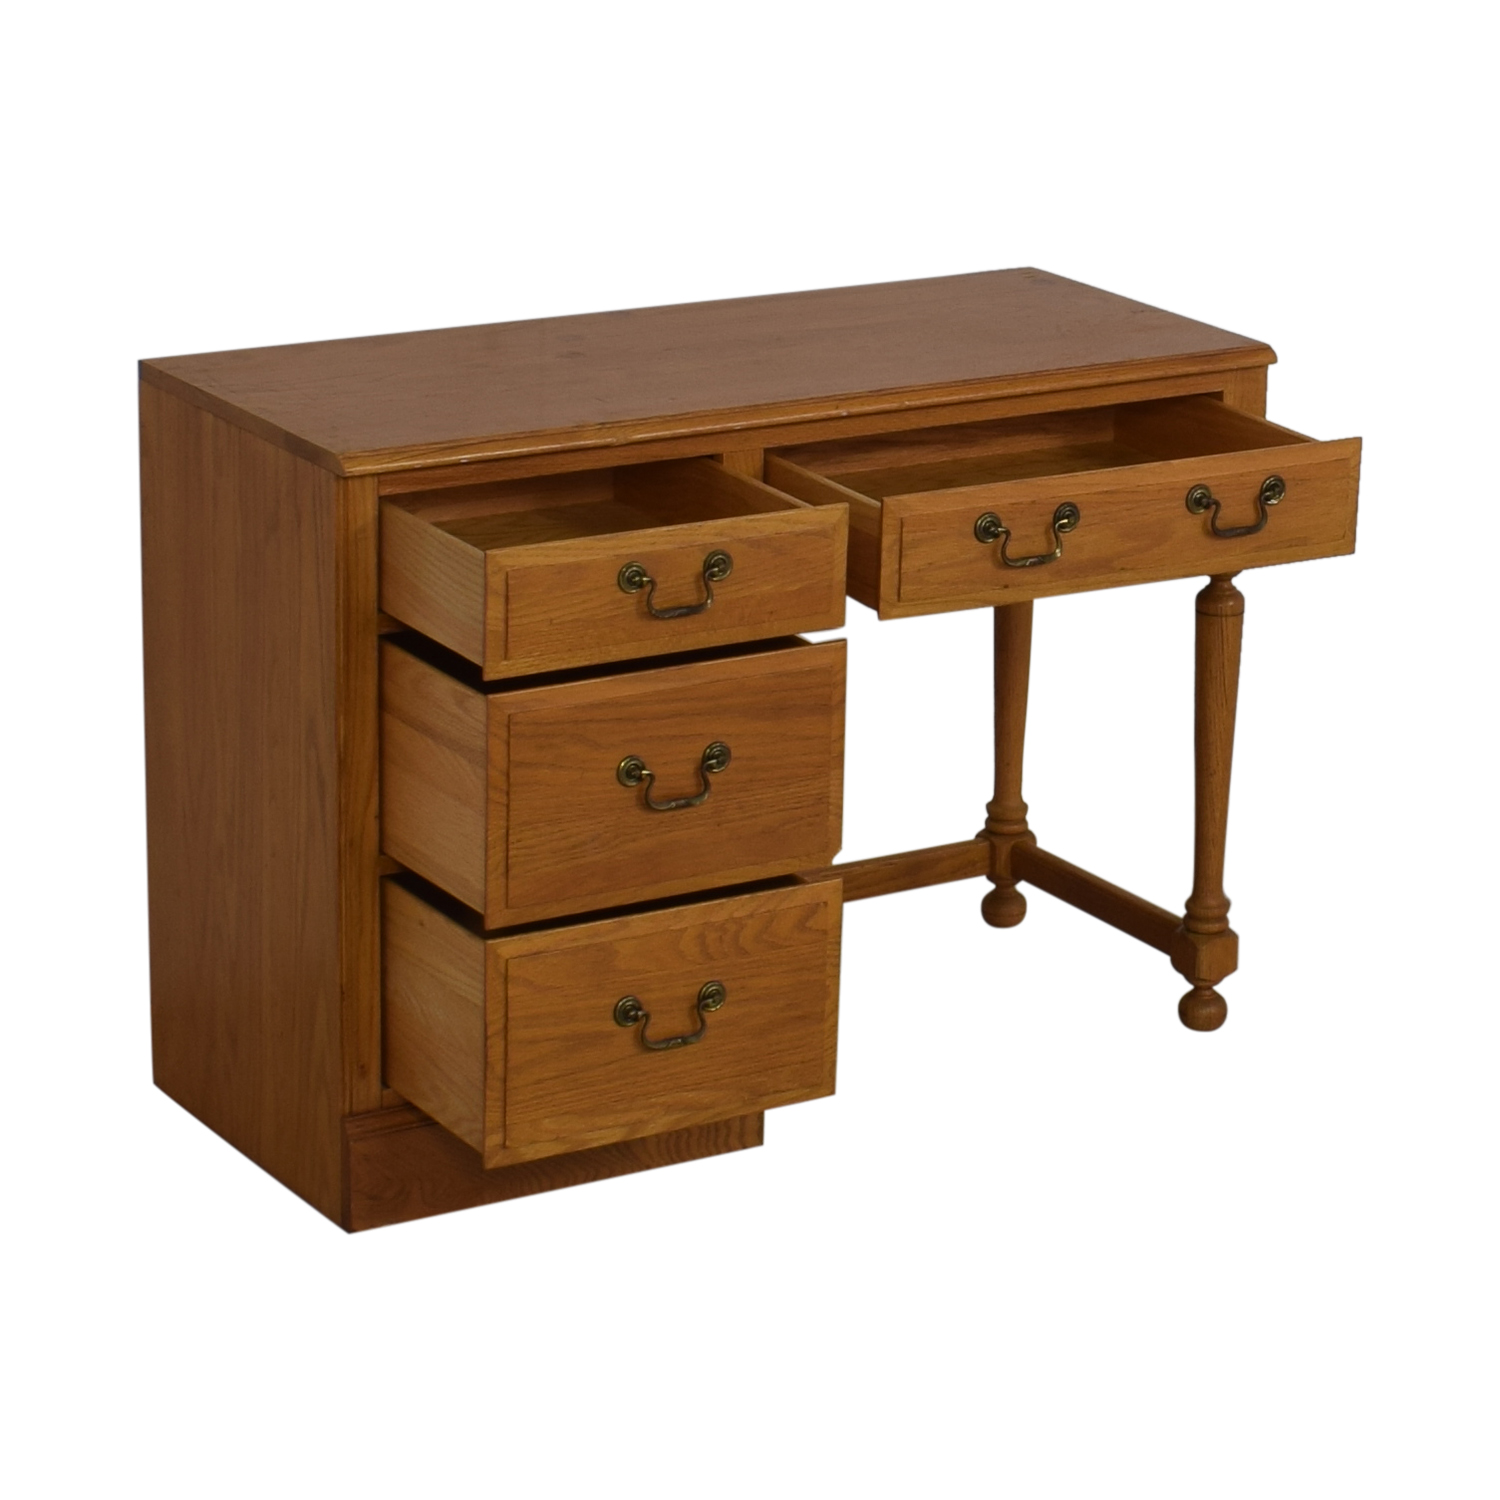 Ethan Allen Canterbury Chippendale Desk and Chair sale